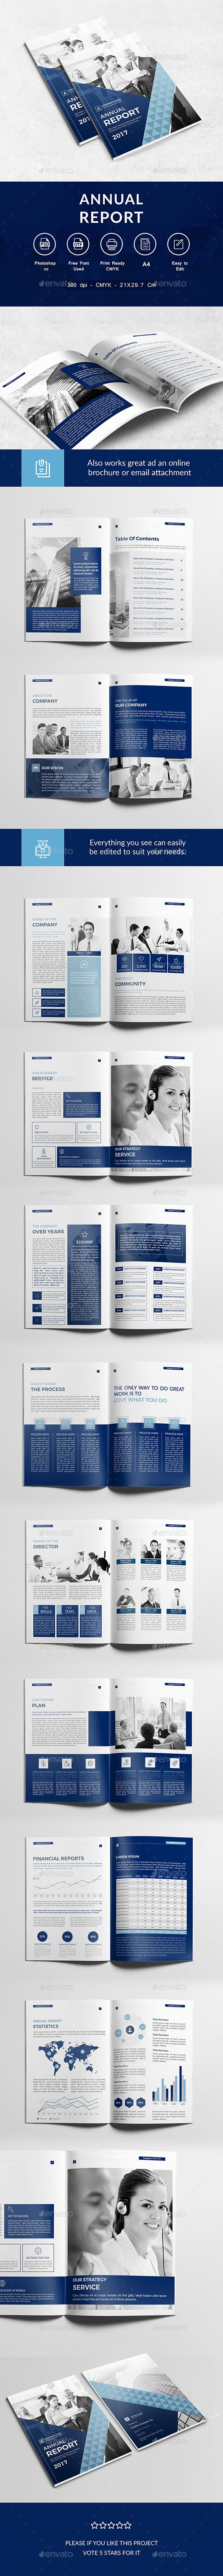 Buy Annual Report Template By AlfaresIT On GraphicRiver. Annual Report  Template Professional, Clean And Modern 22 Page Corporate Brochure.